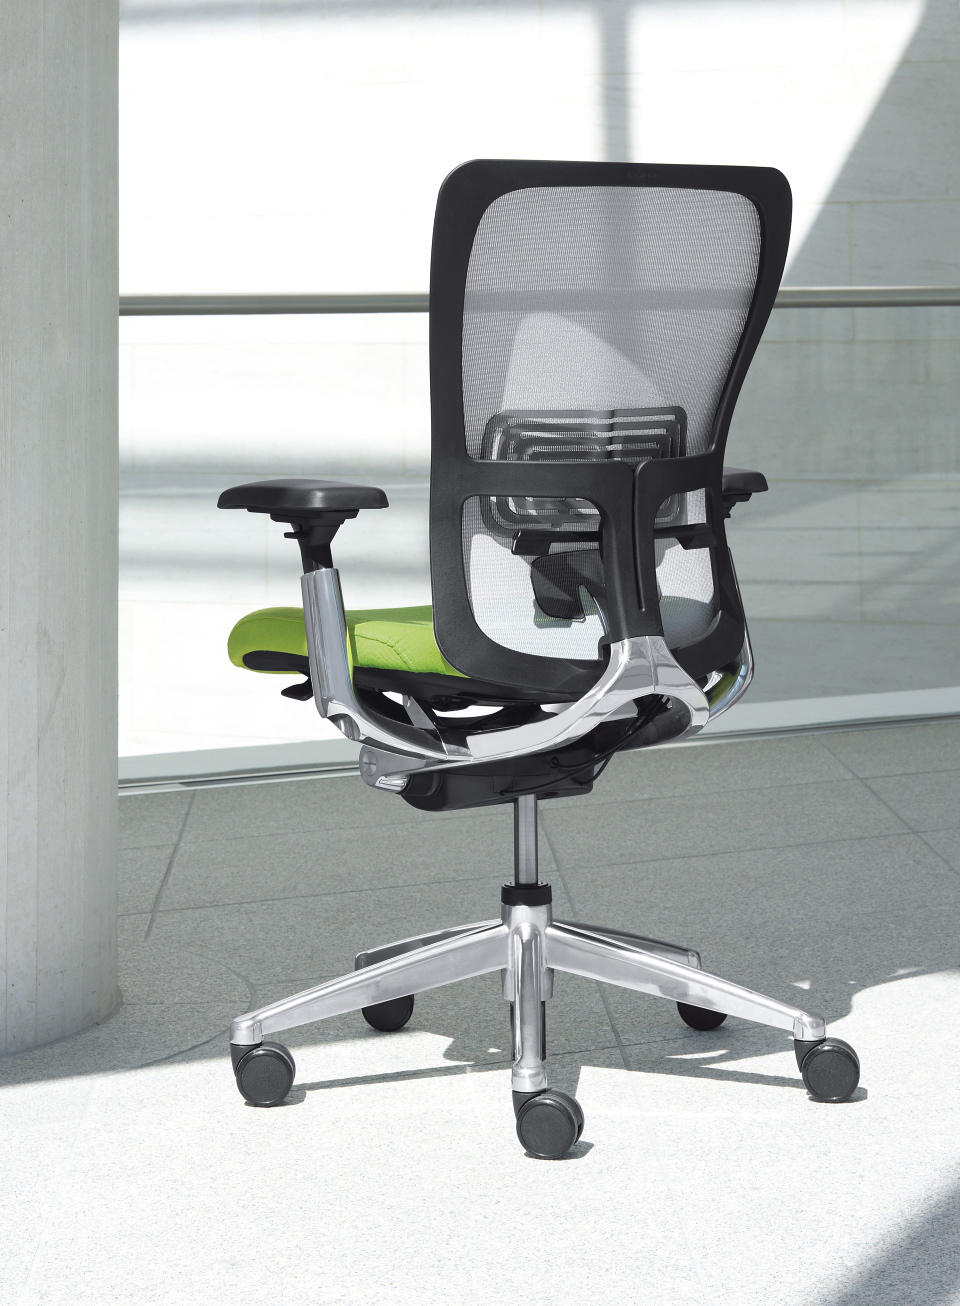 ZODY Management chairs from Haworth